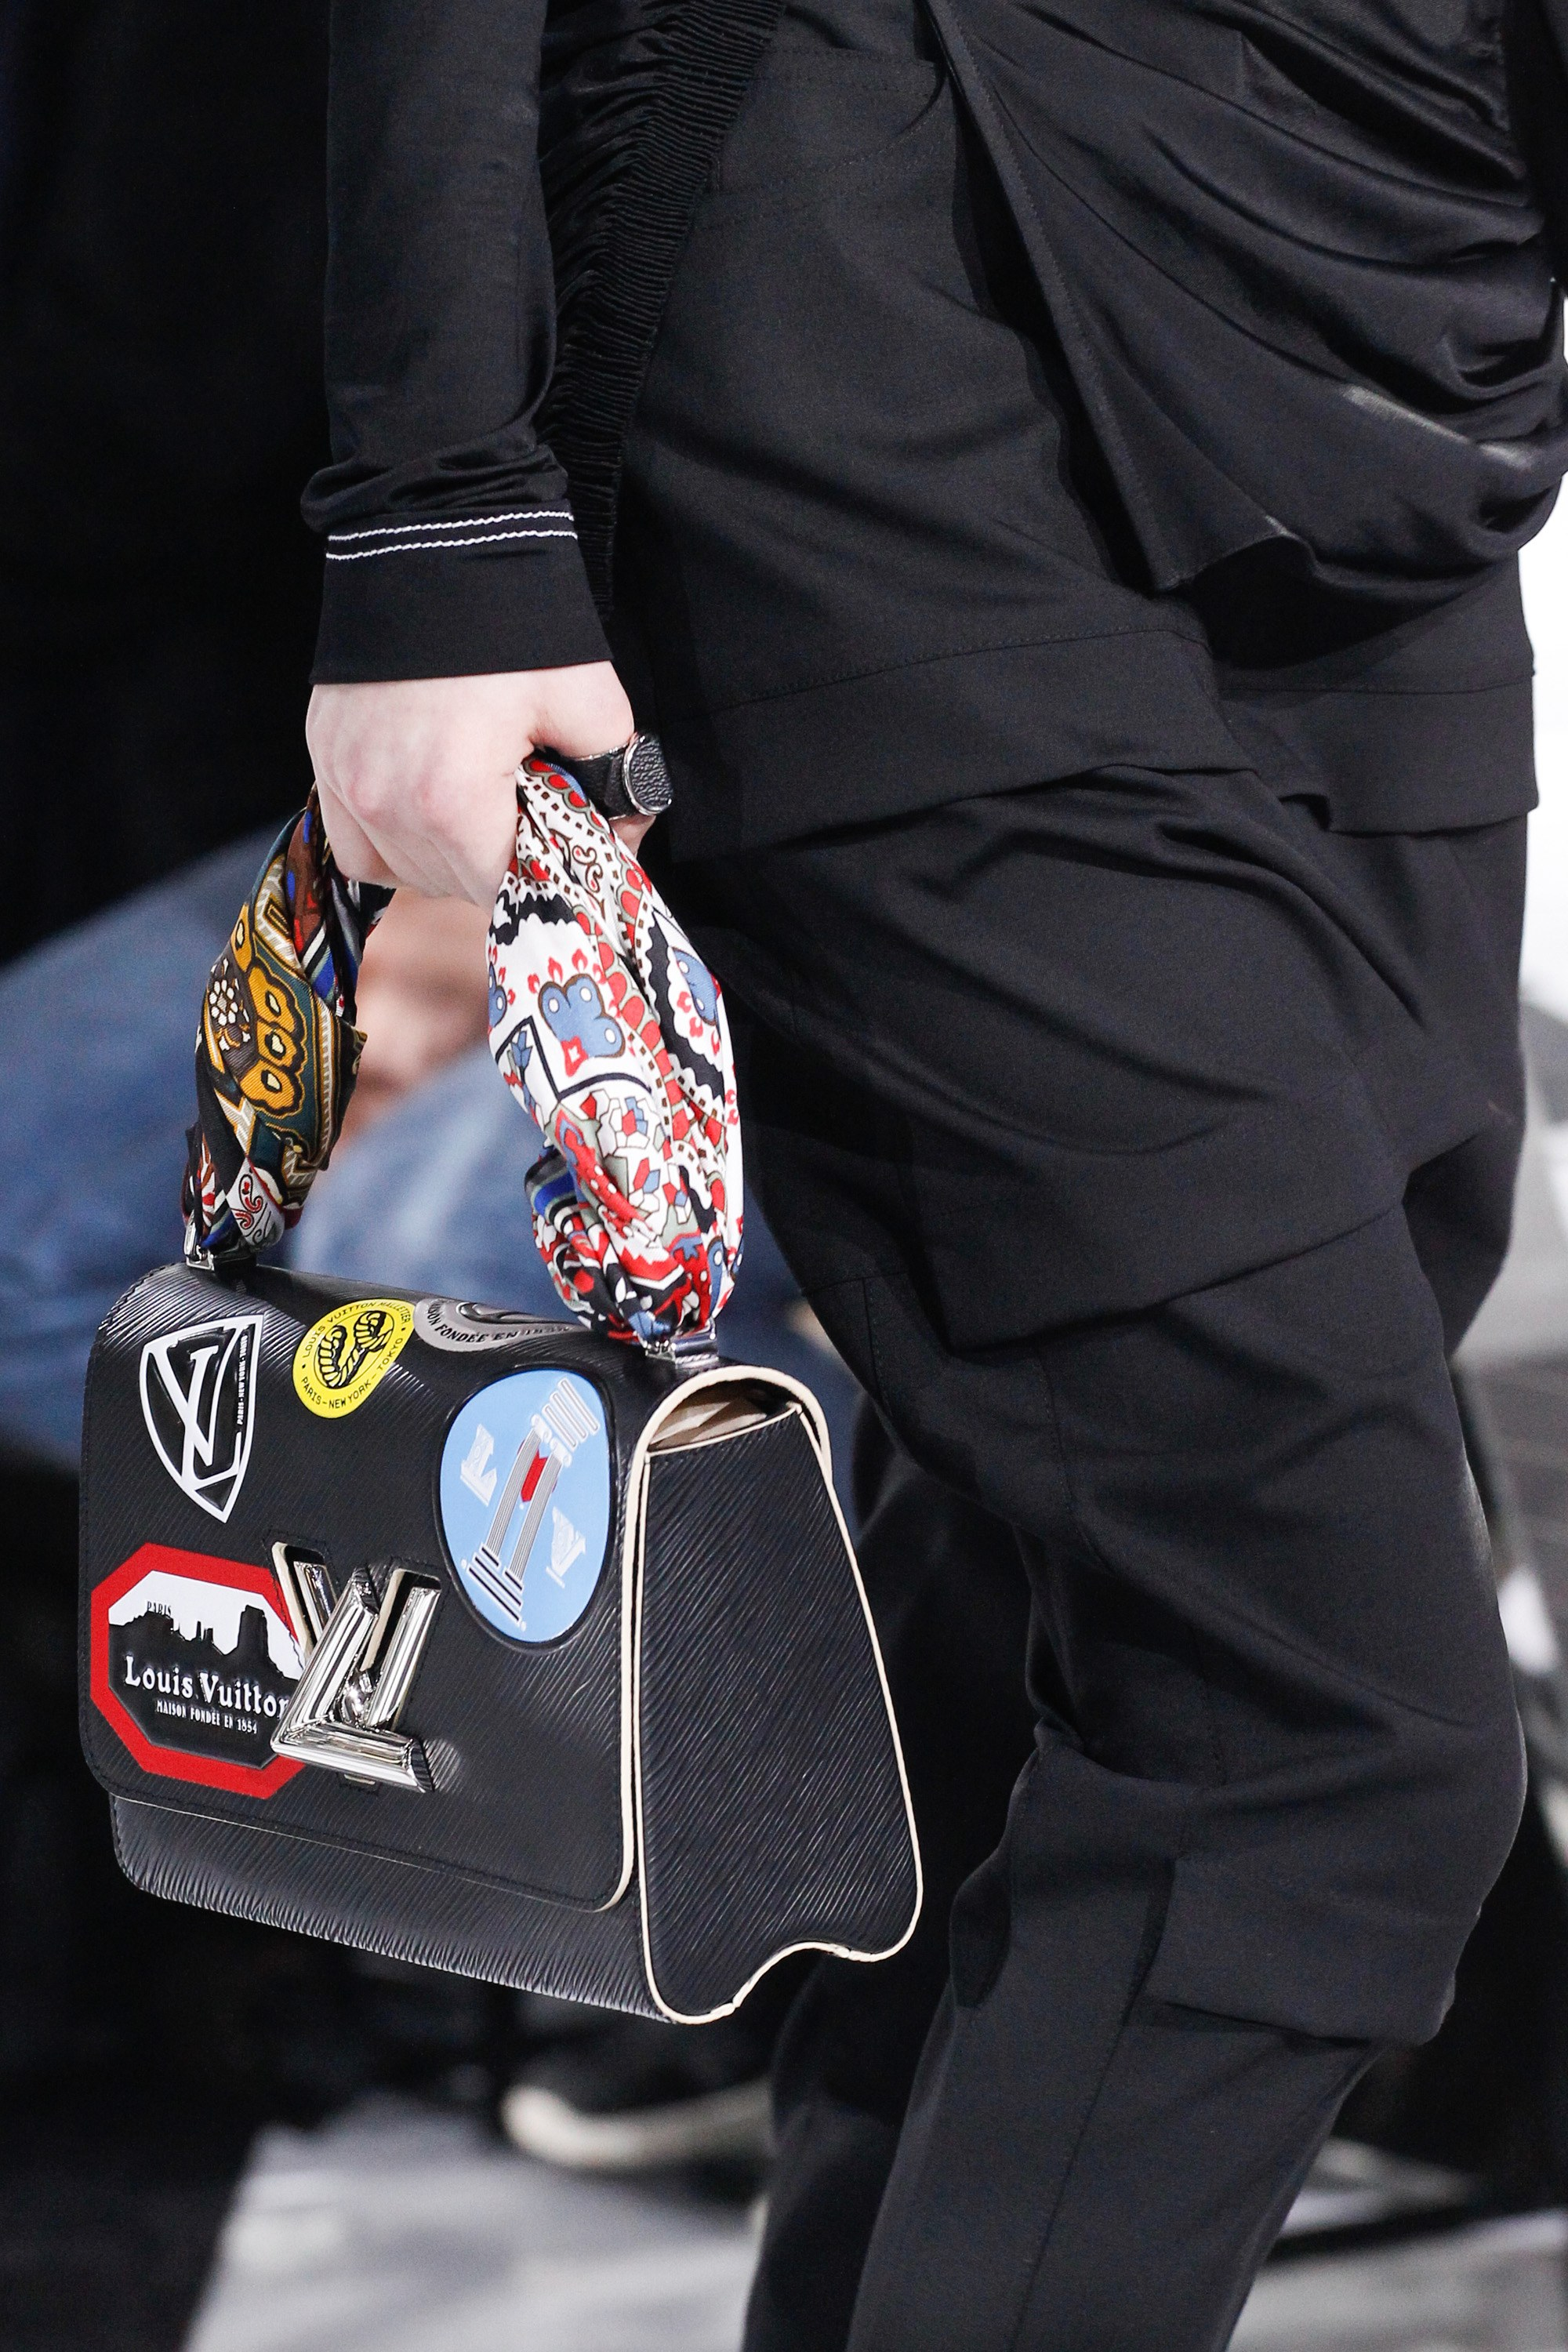 Louis Vuitton Fall Winter 2016 Runway Bag Collection